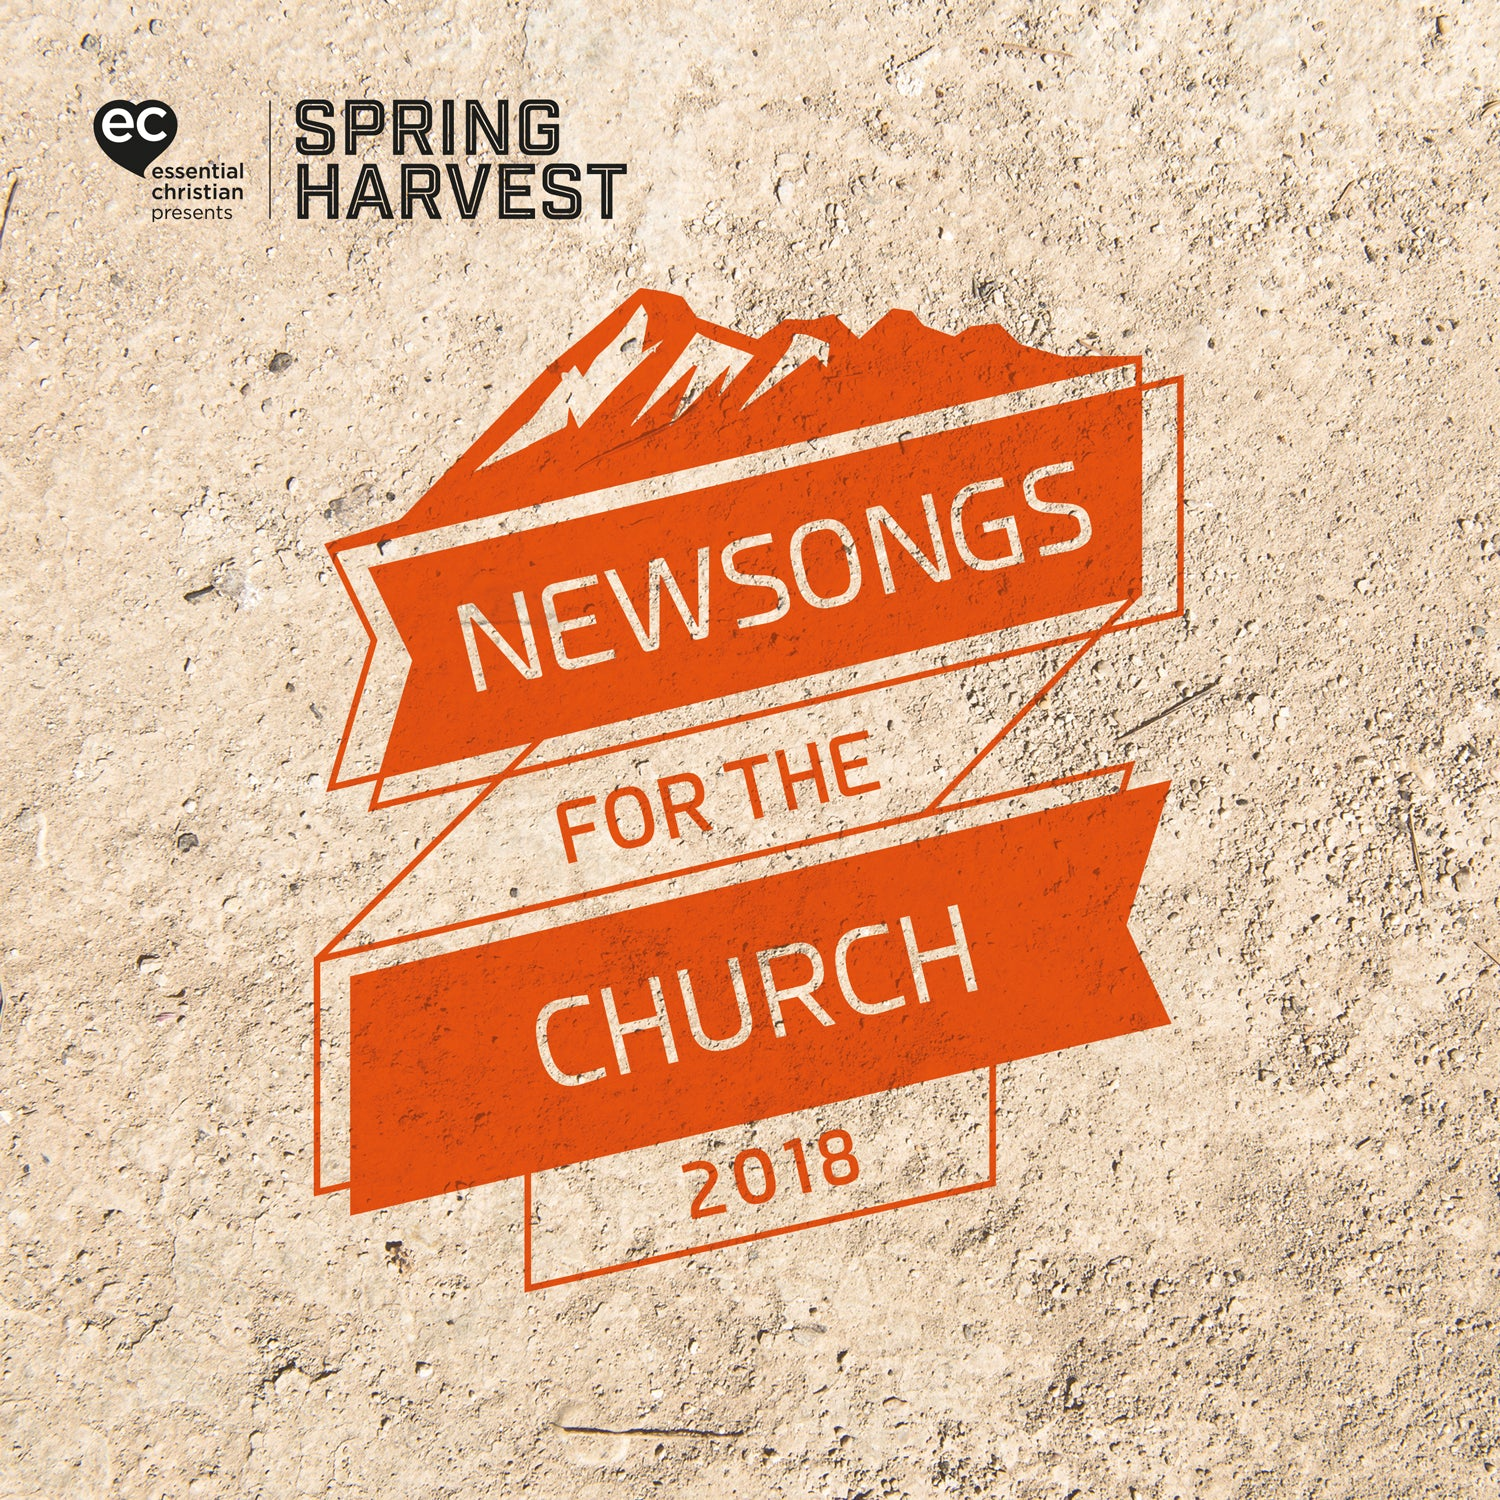 Spring Musical 2018: Spring Harvest 2018 New Songs For The Church